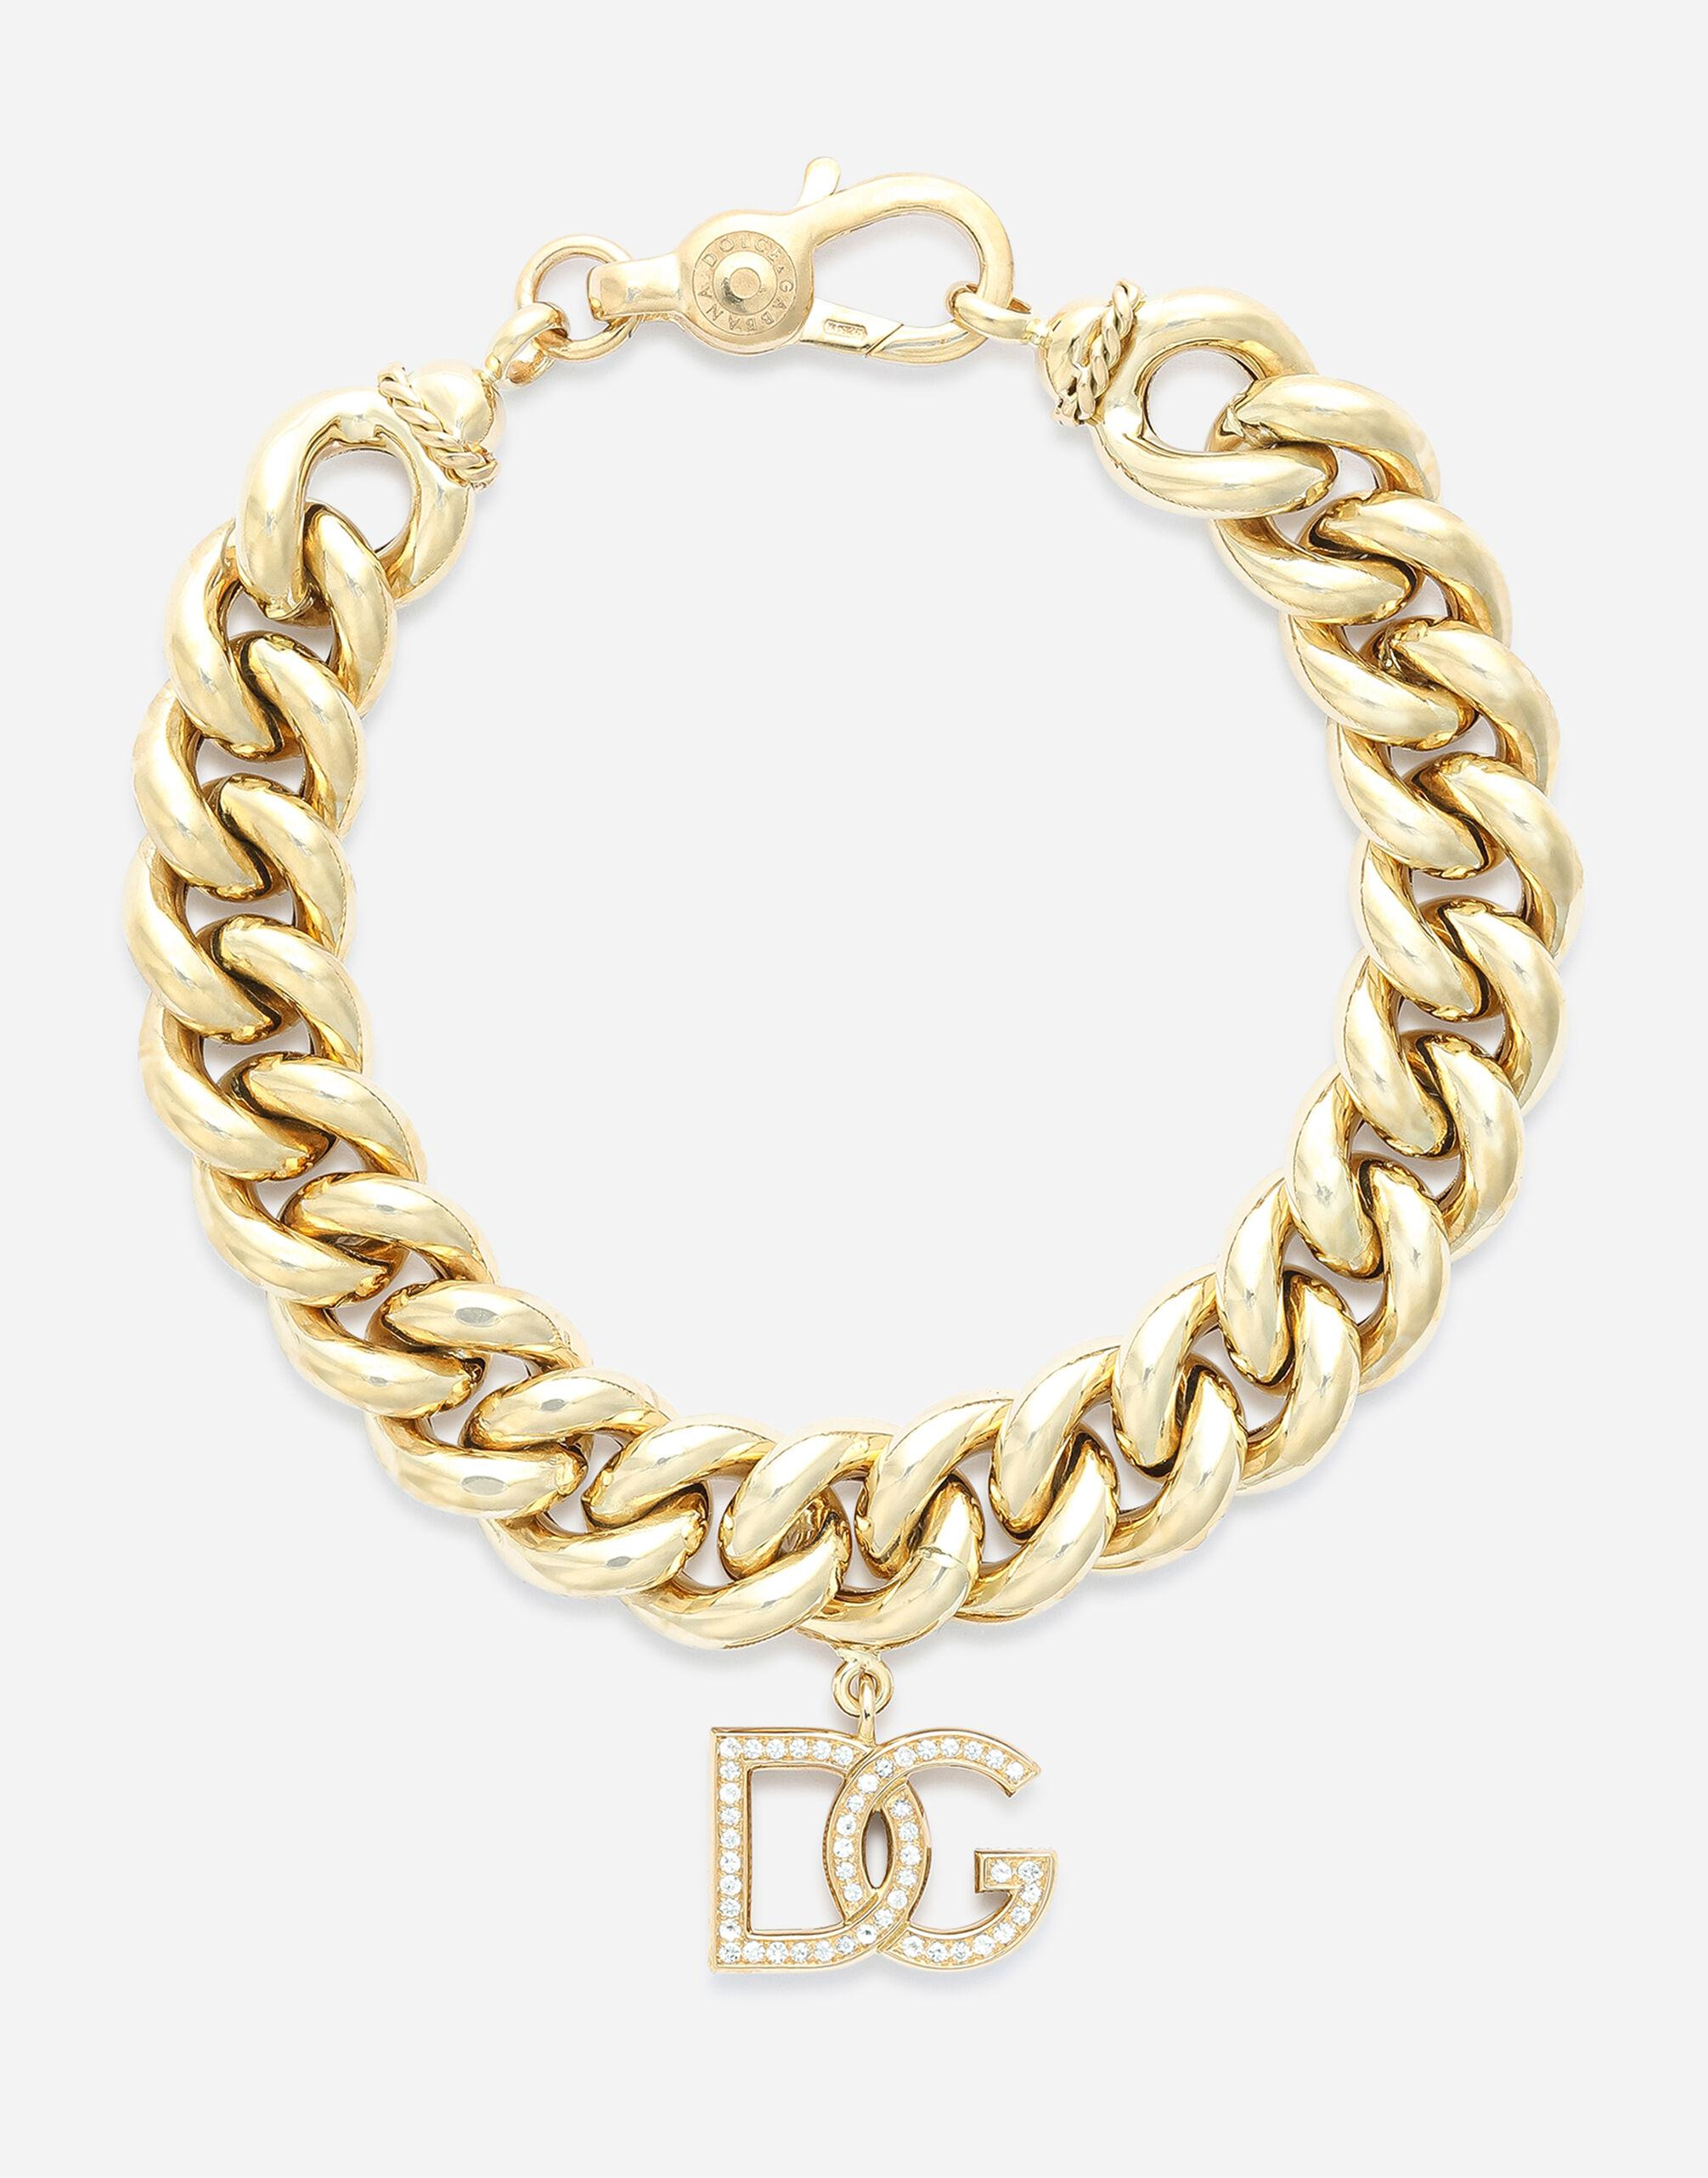 Logo bracelet in yellow 18kt gold with colorless sapphires